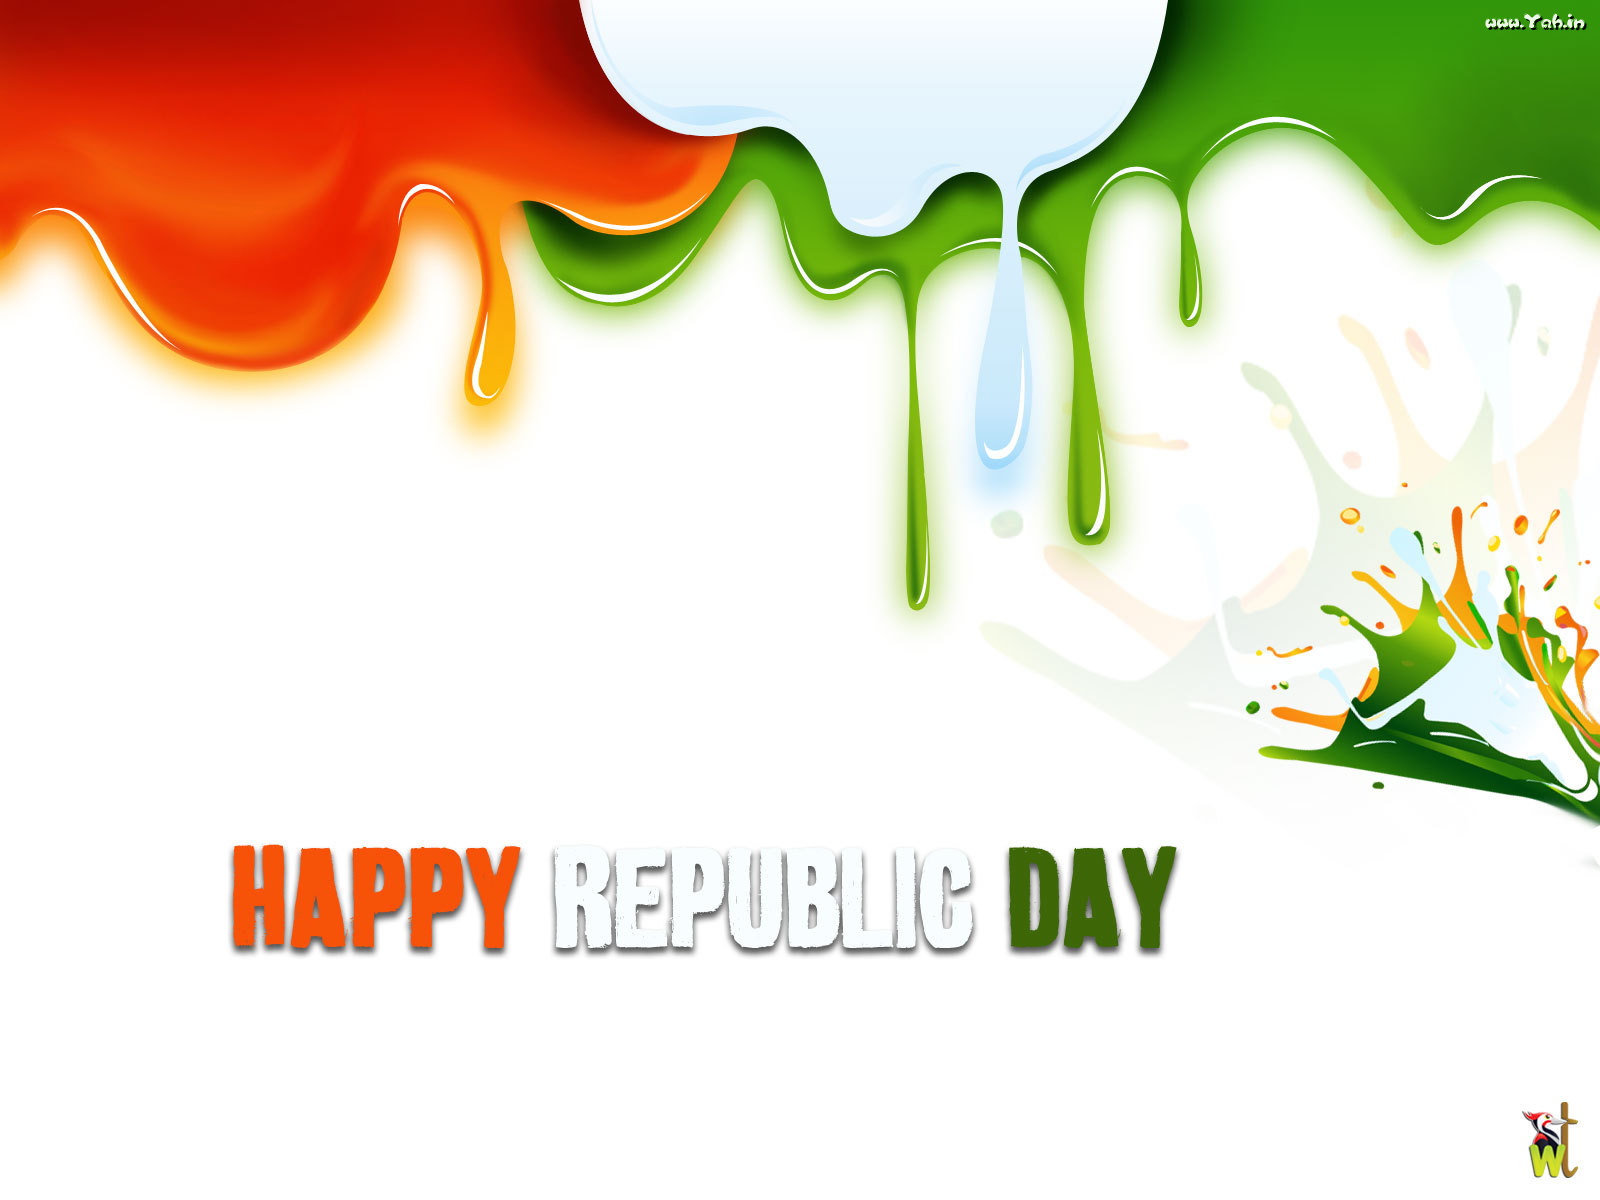 Happy Republic Day Picture for Facebook Share